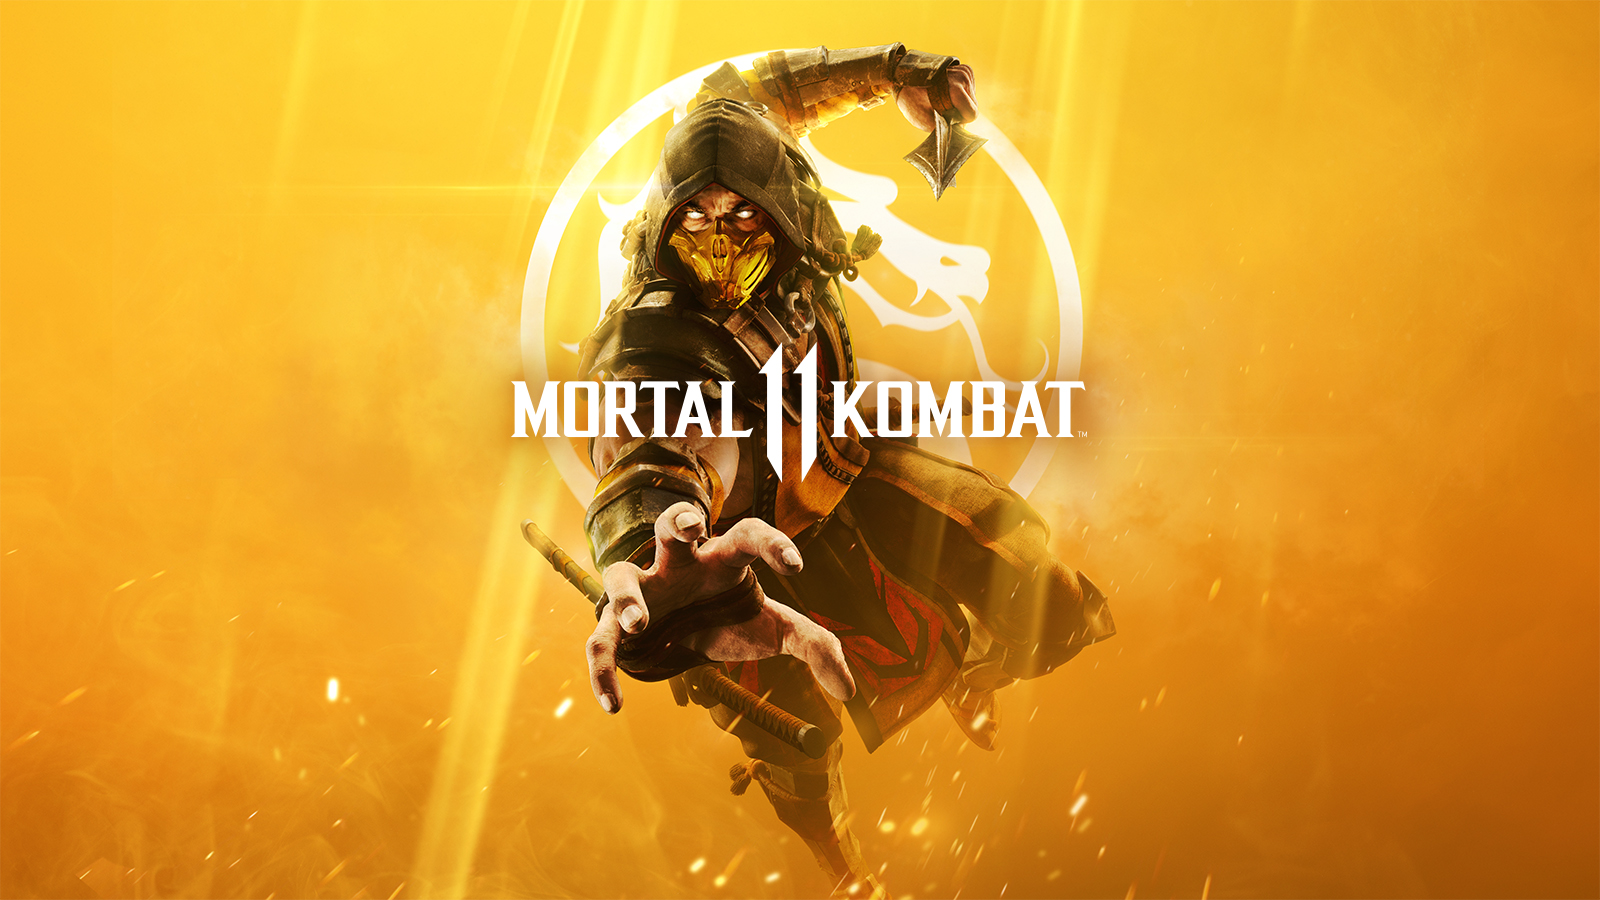 Mortal Kombat 11 A Game Miles Better Than The Rather Disappointing Tekken 7